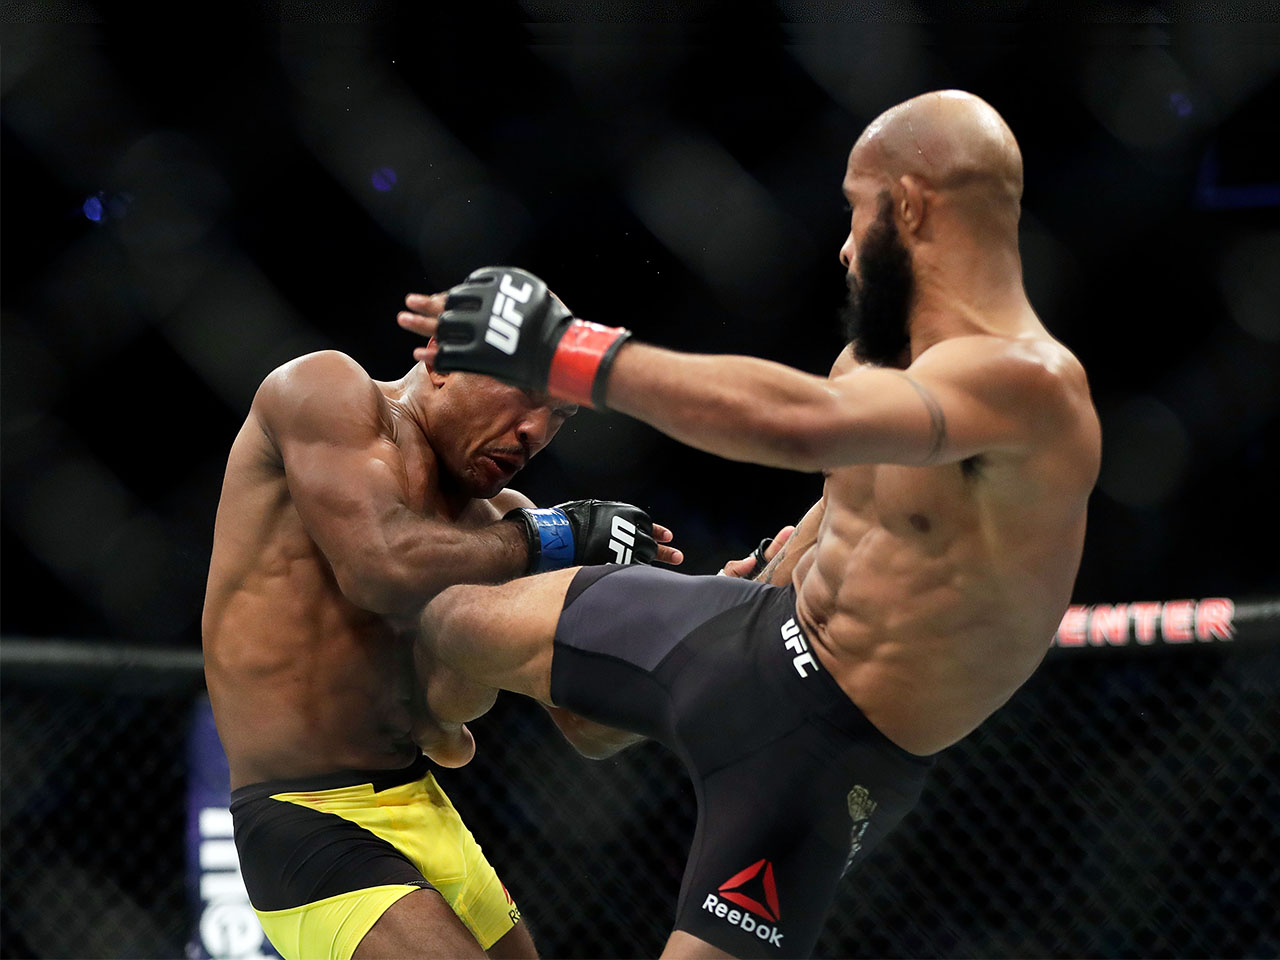 The UFC workout program to get built like a fighter